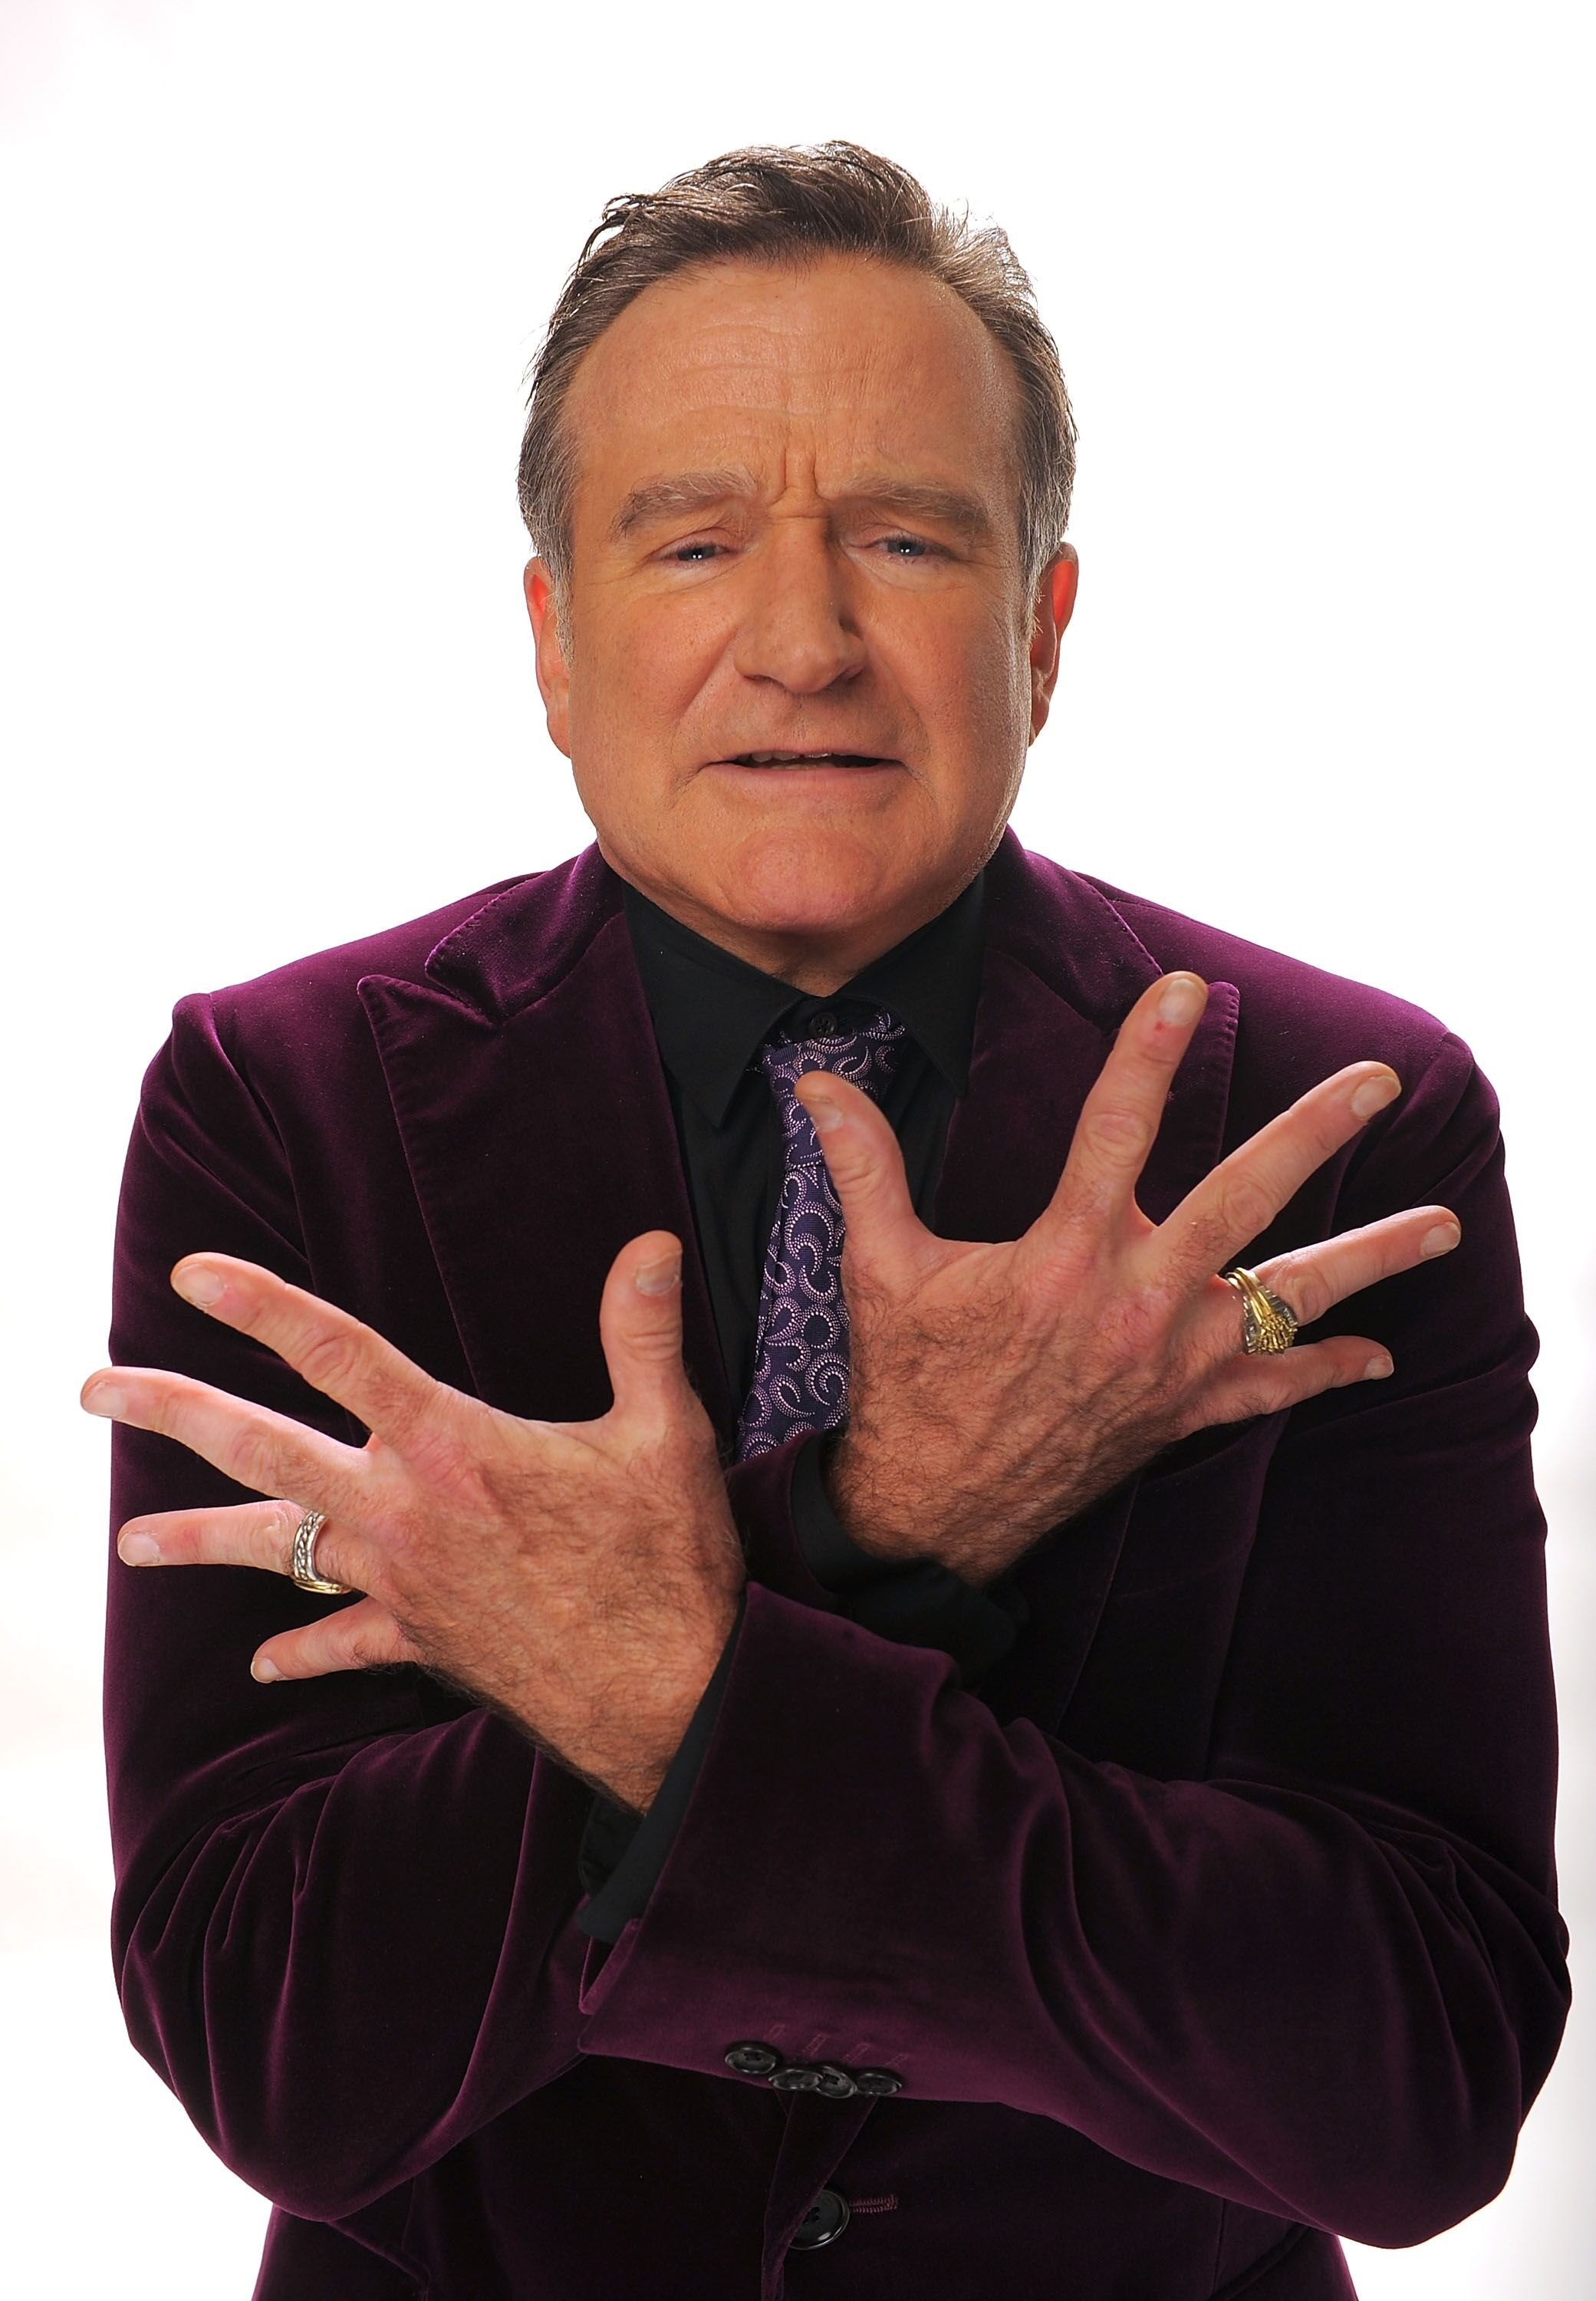 Actor Robin Williams poses for a portrait during the 35th Annual People's Choice Awards. | Source: Getty Images